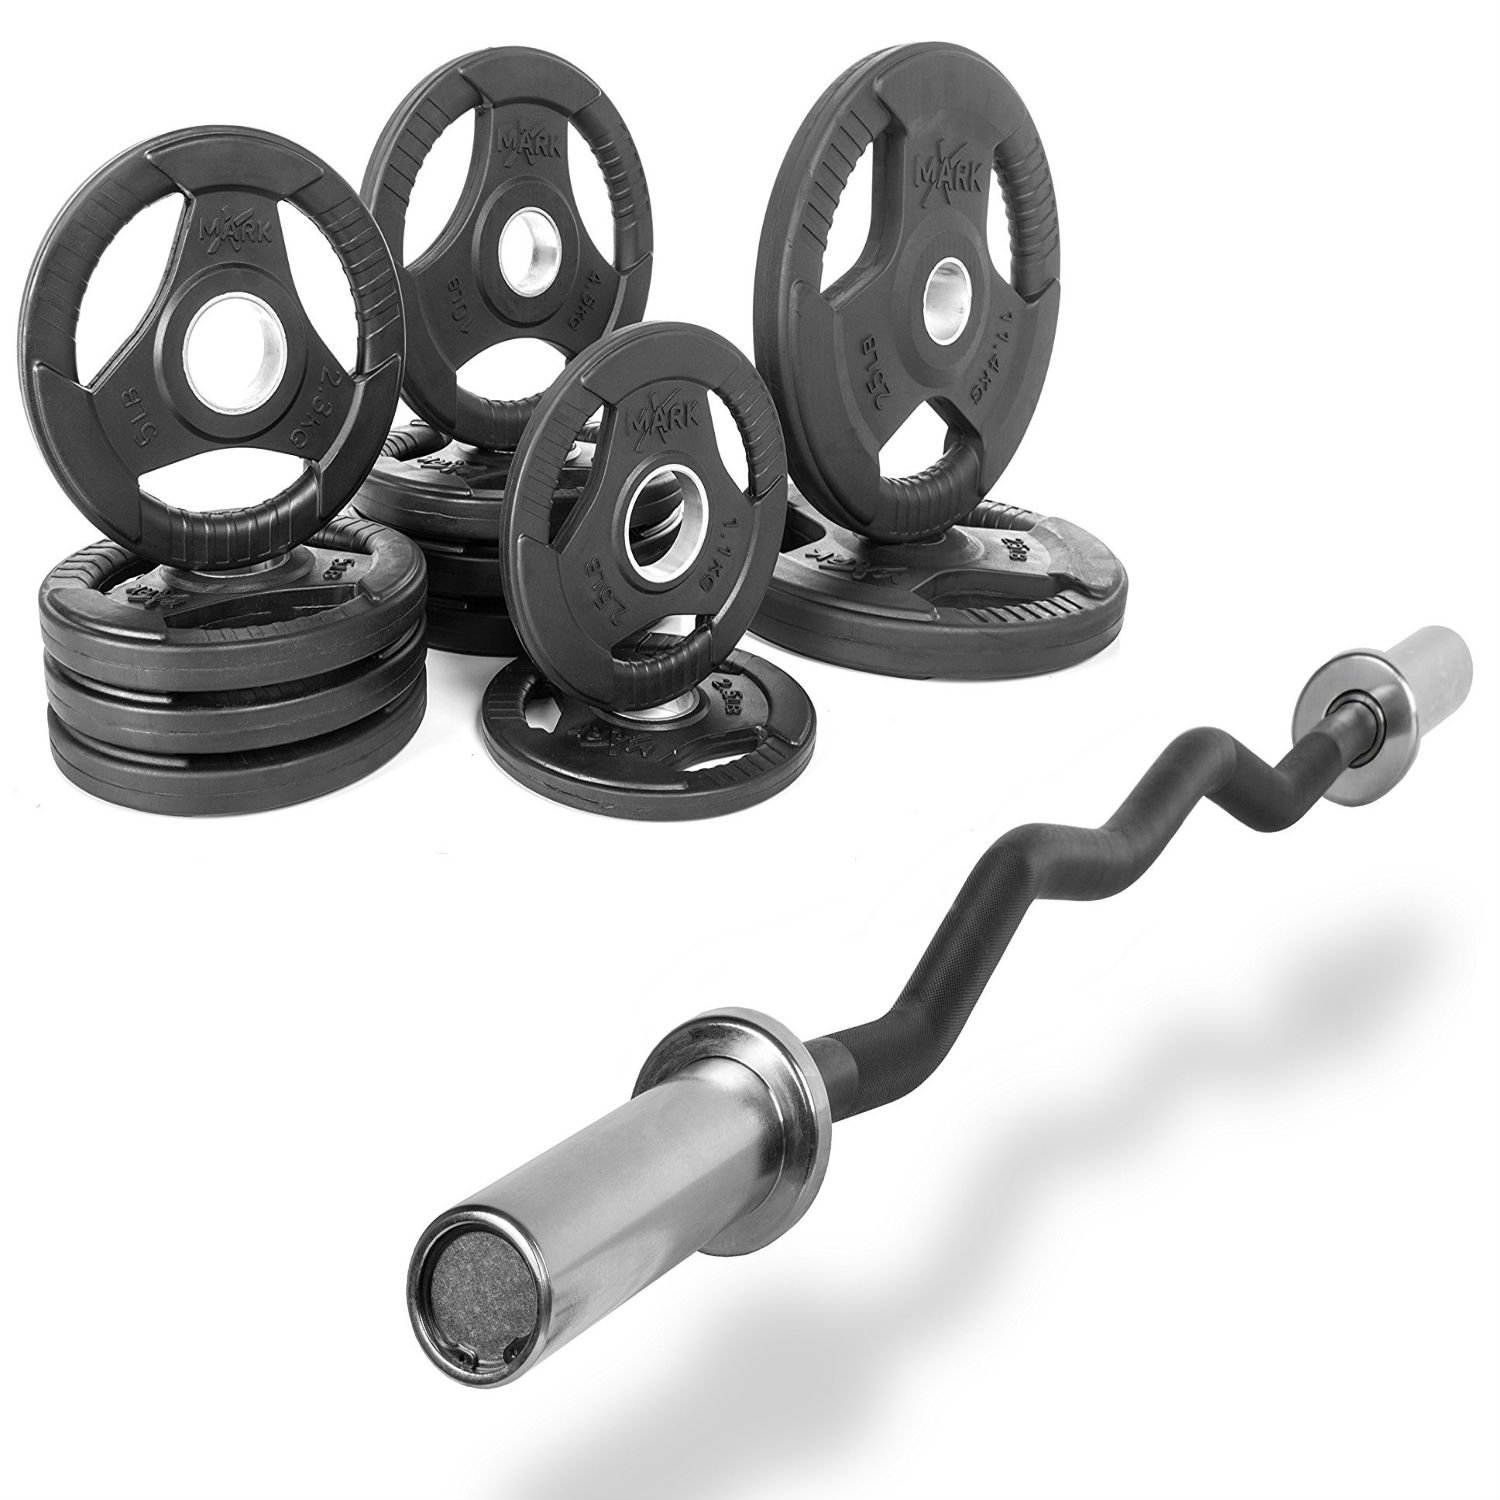 XMark Fitness Combo Offer 47'' Olympic EZ Curl Excercise Bar with Premium Quality Rubber Coated Tri-Grip Olympic Plate Weight Package (XM3670.1BLACK-XM3377BAL115)